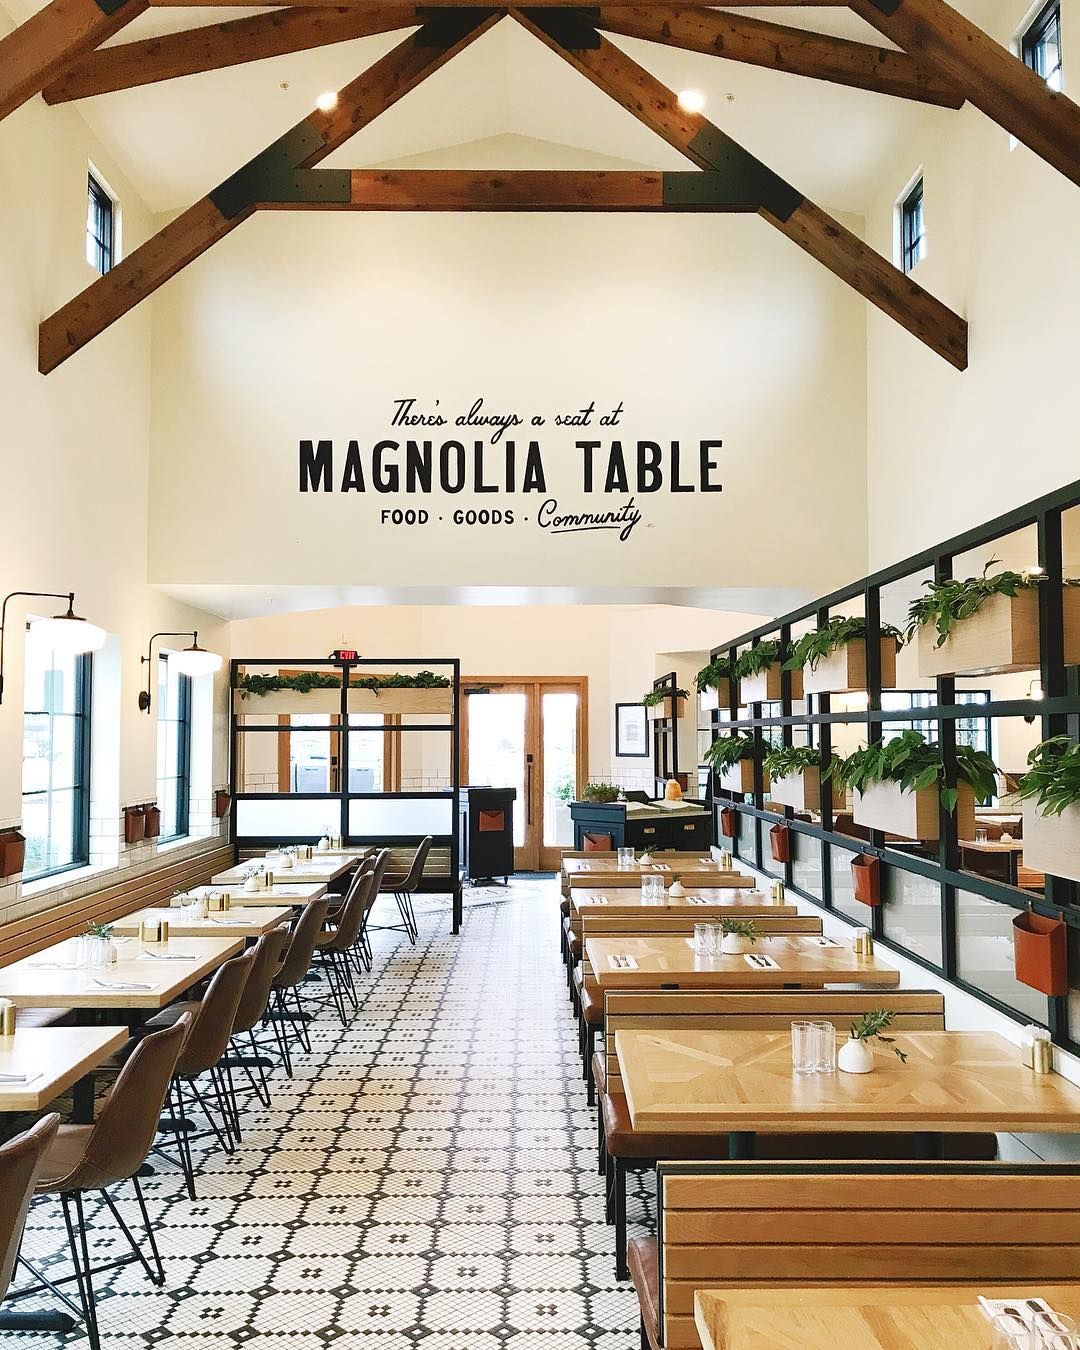 Magnolia Table Menu What Kind Of Food Is Chip And Joanna Gaines S New Restaurant Serving Magnolia Table Restaurant Fixer Upper Chip And Joanna Gaines